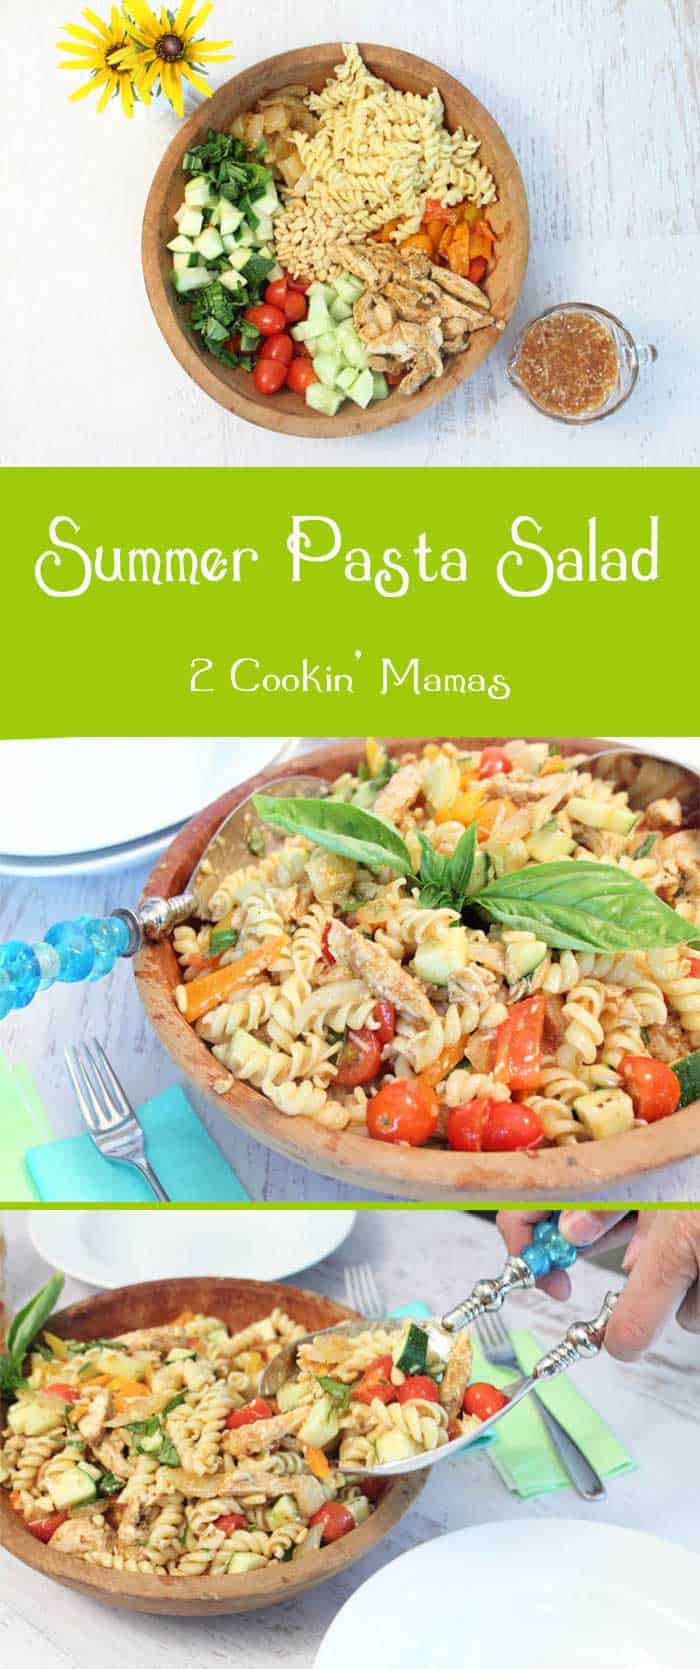 Summer Pasta Salad pin | 2 Cookin Mamas This salad will keep you cool & healthy. Plenty of fresh veggies, lean protein and whole grain pasta. Perfect for summer! #recipe